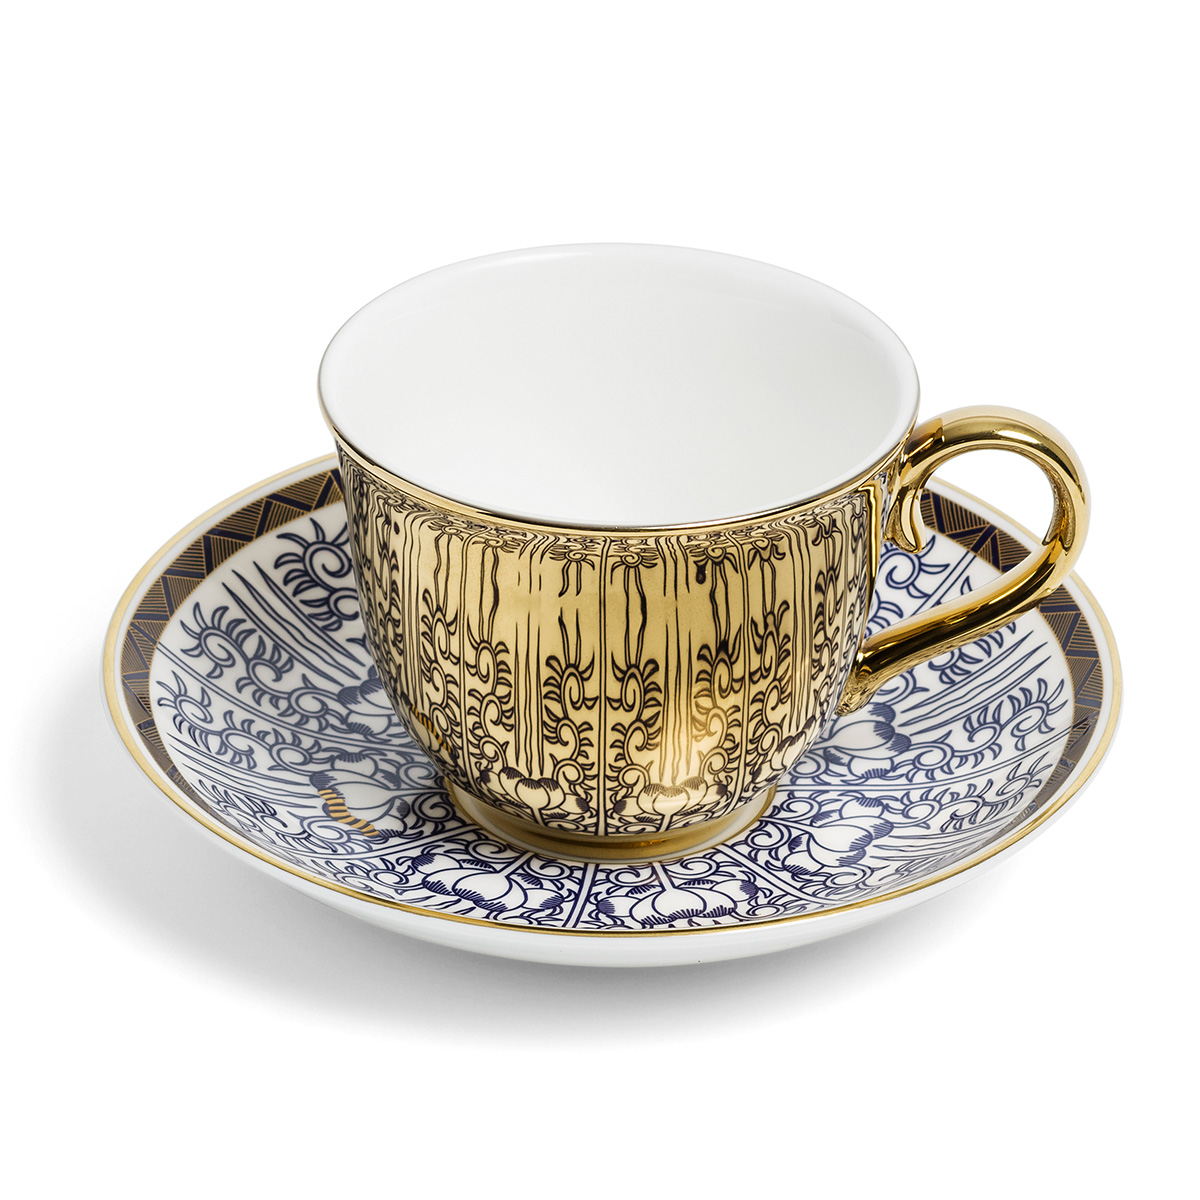 Georgian Lilies cup and saucer by Richard Brendon